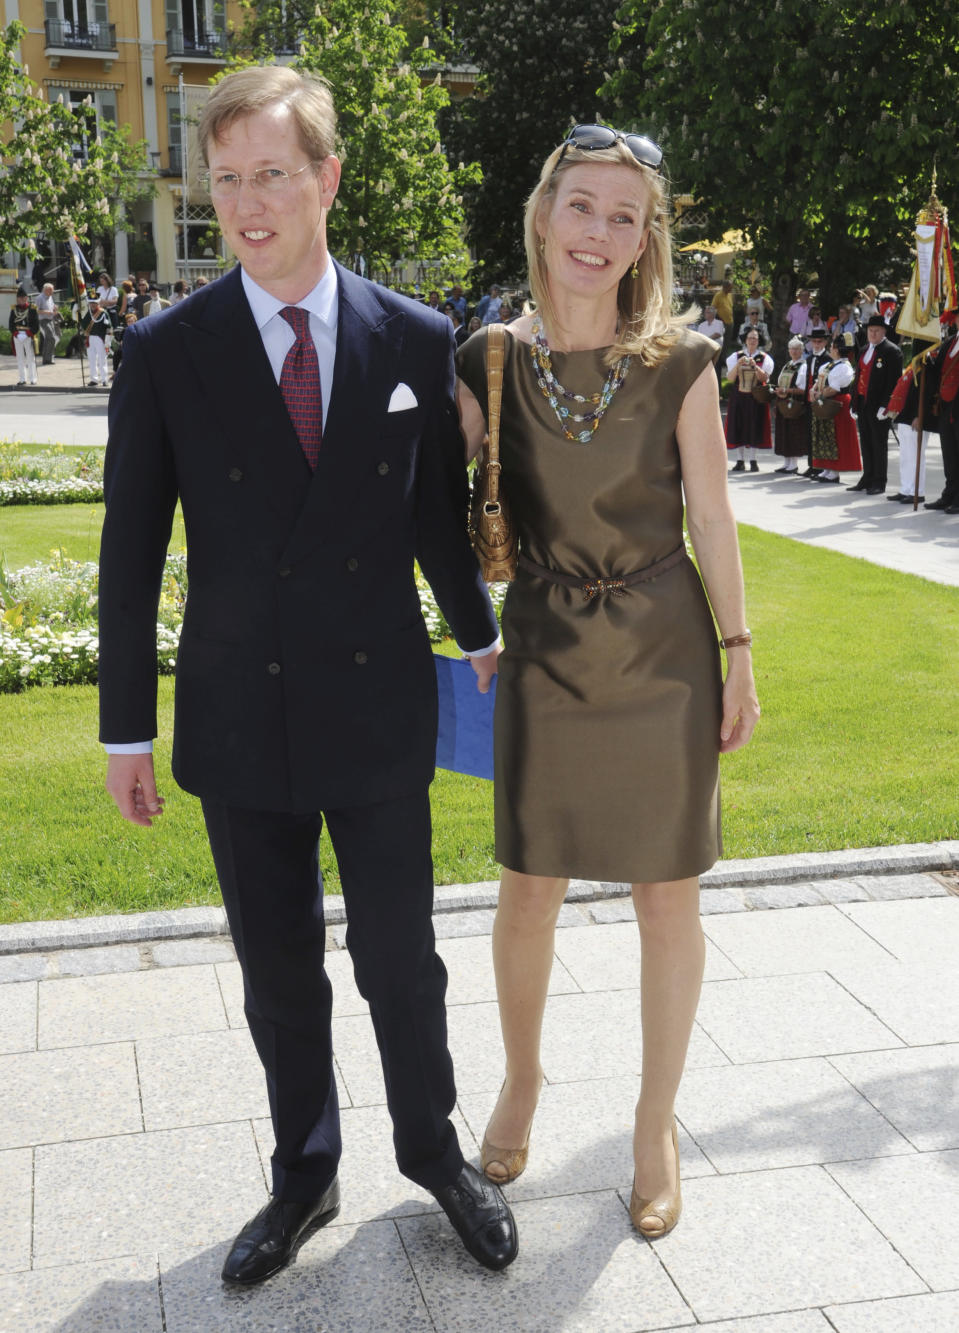 FILE - In this May 11, 2012 file photo Hereditary Prince Bernhard of Baden and his wife Princess Stephanie arrive at a festive matinee at the Baden-Baden Theatre in Germany. Hereditary Prince Bernhard of Baden will attend Britain's Prince Philip's funeral at St. George's Chapel at Windsor Palace on Saturday. (Uli Deck/DPA via AP)